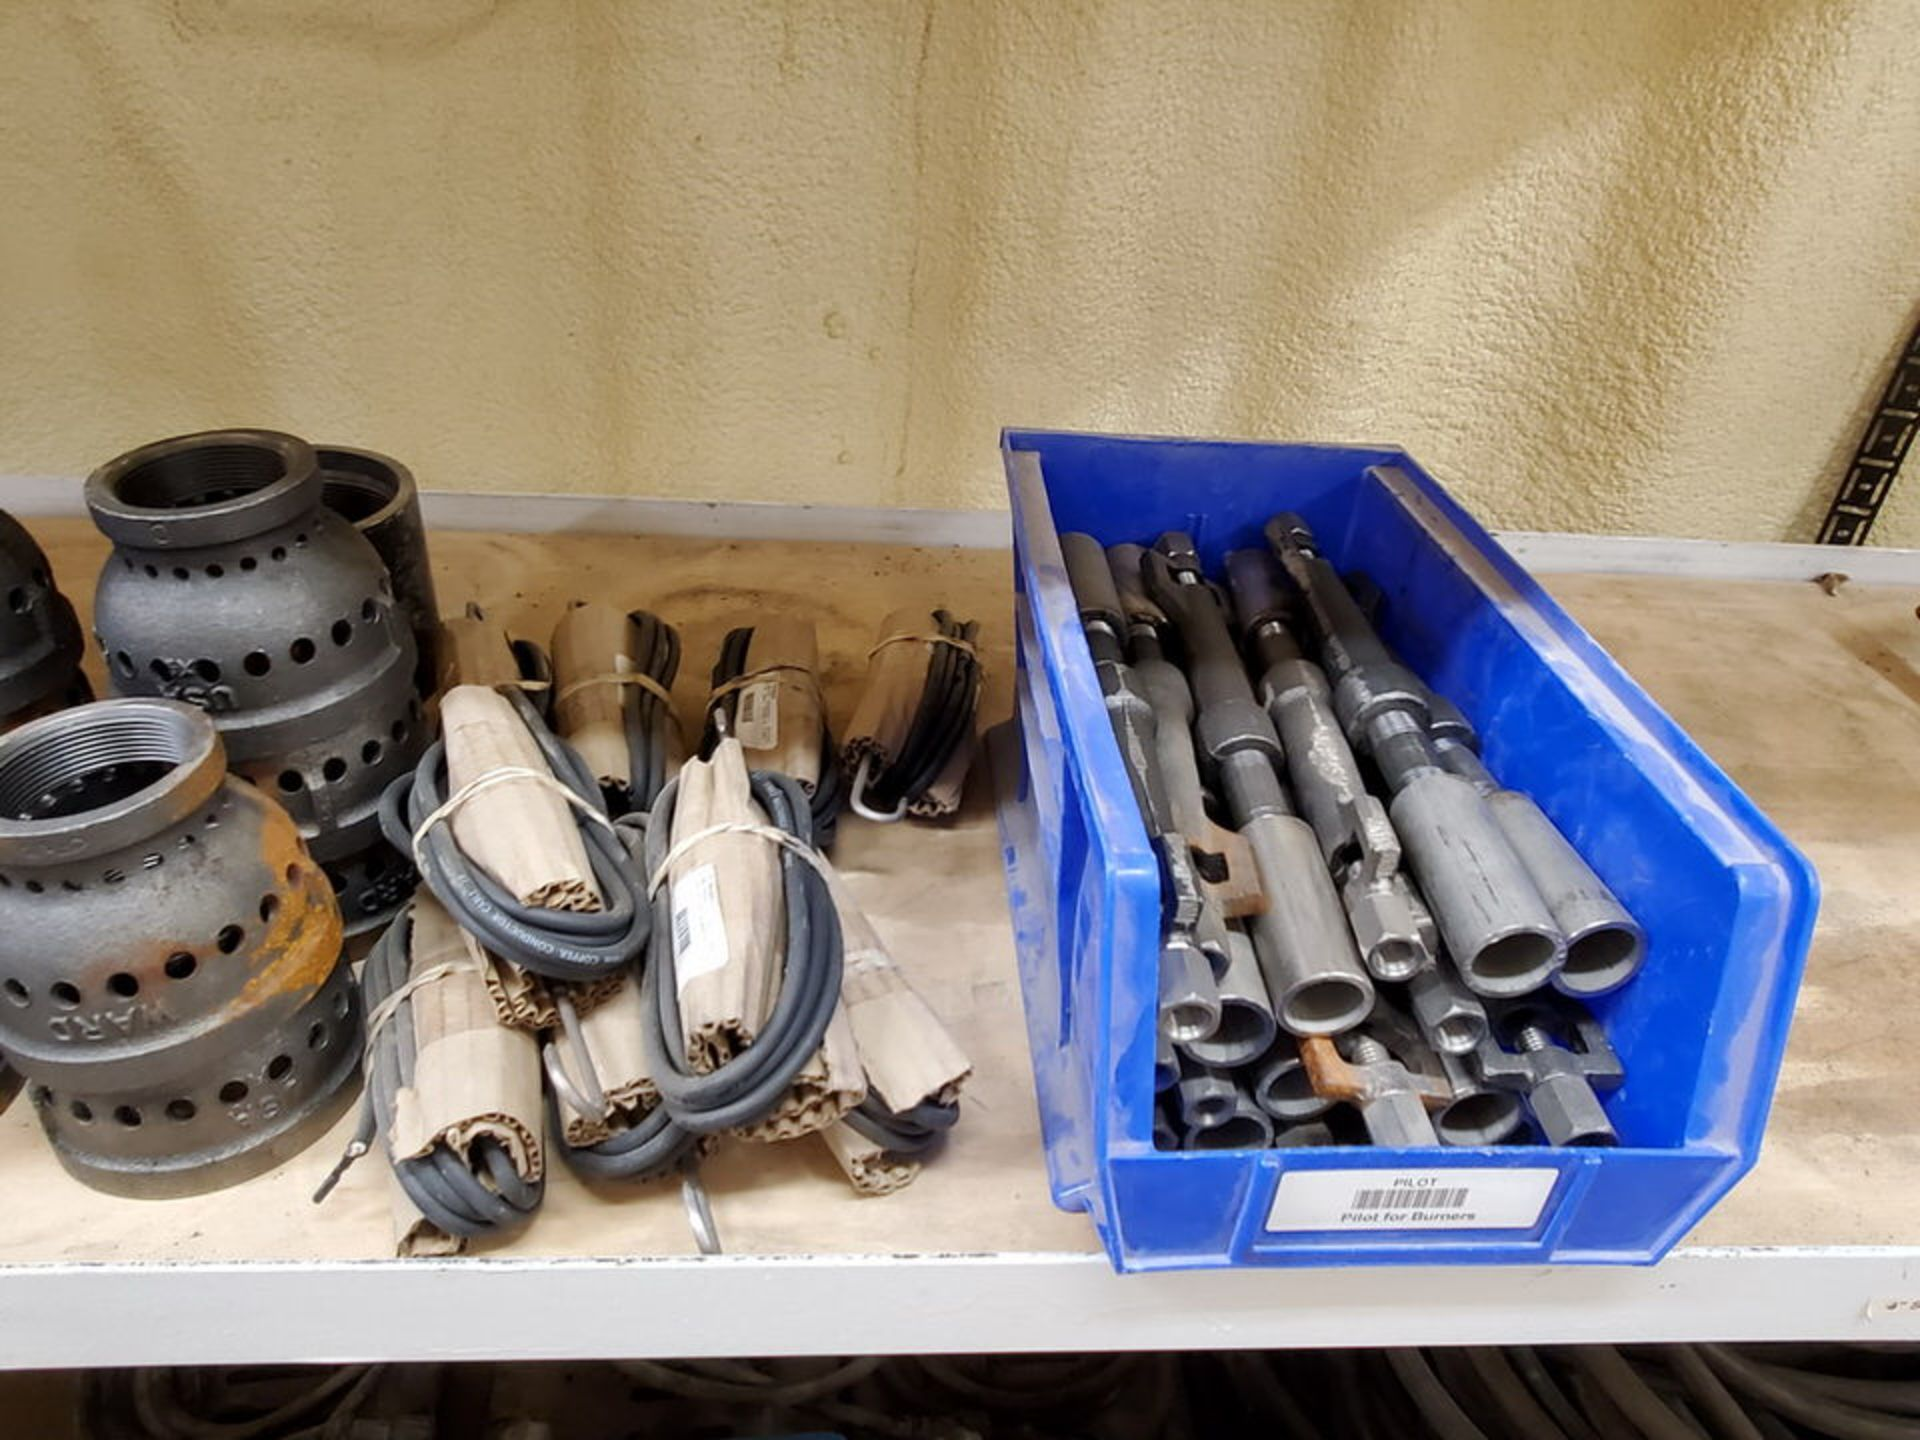 Assorted Fittings To Include But Not Limited To: Ells, 90's, Couplings, Nipples, U-Bolts, Washers, - Image 24 of 25